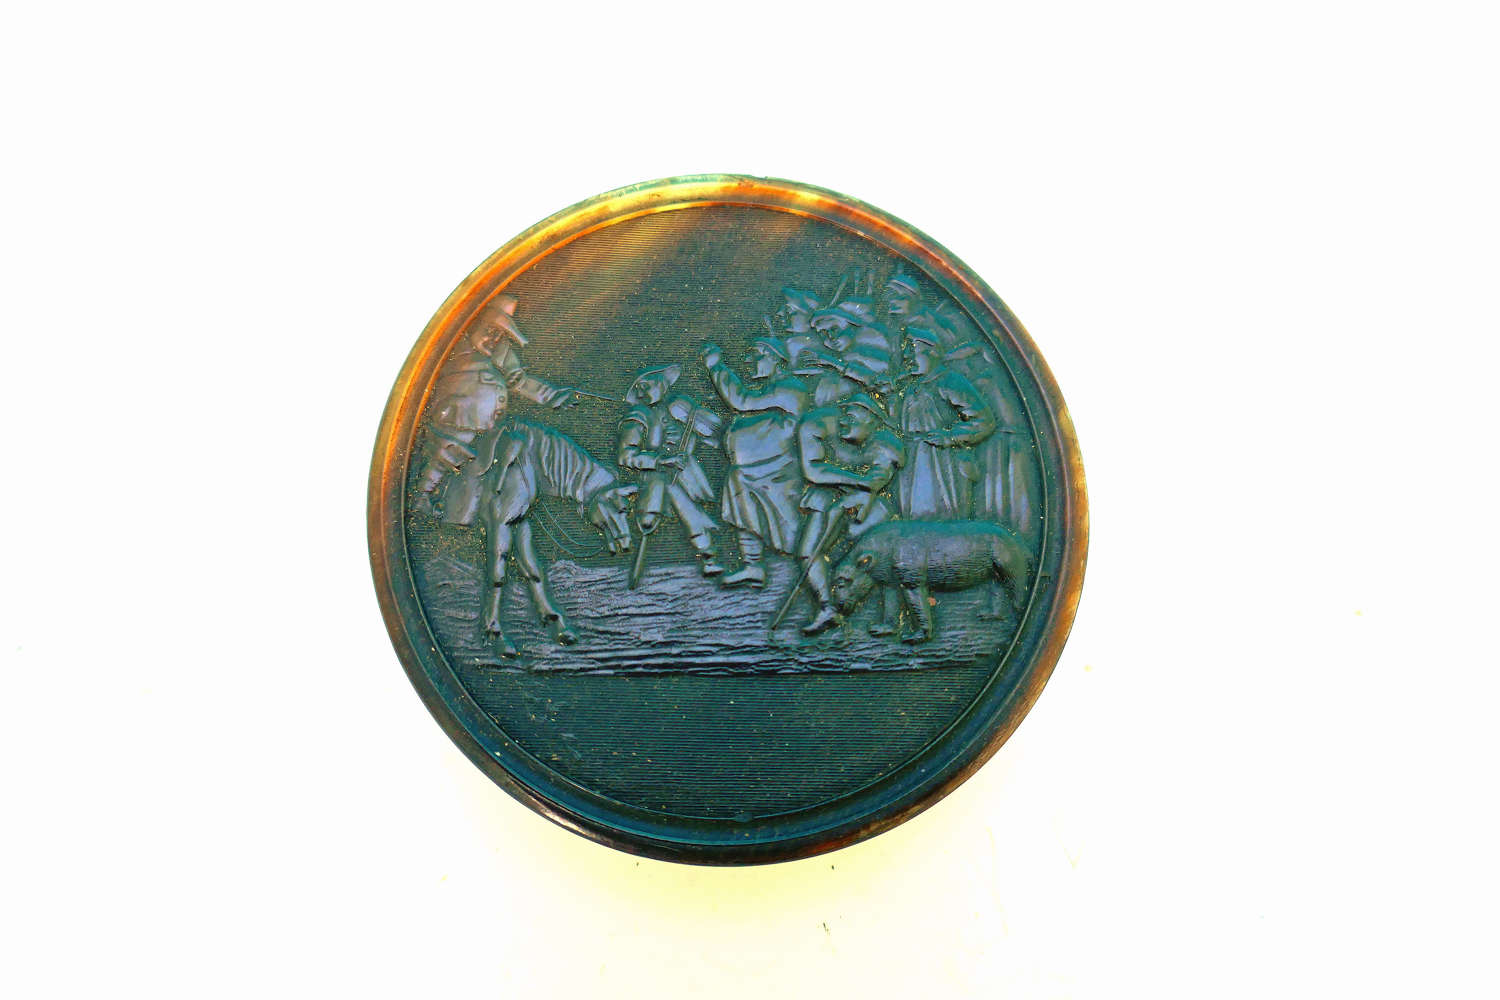 Early 19thc Horn Collectables Signed Bradwell Pressed Snuff Box.